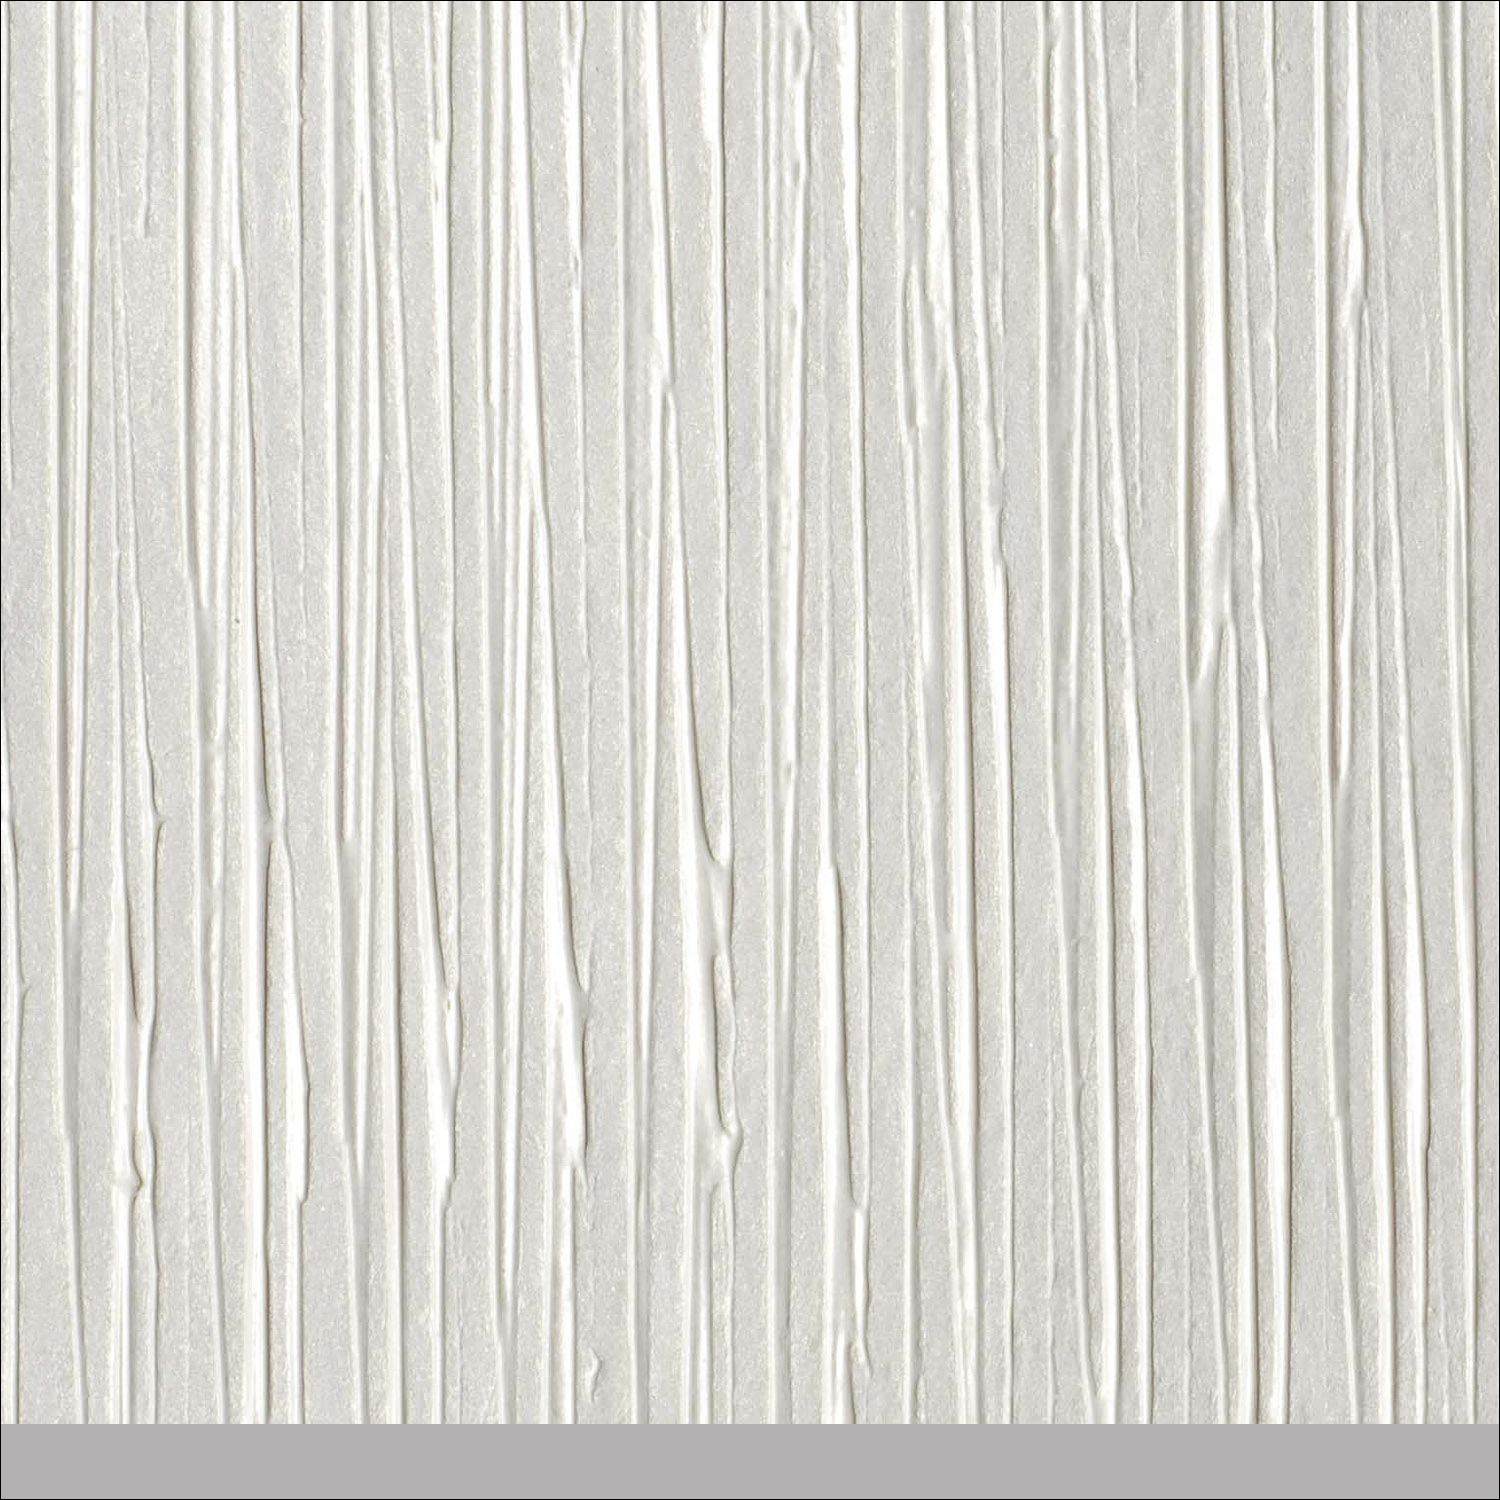 Line Texture Wall : The paper wall wallpapers wallpapersafari